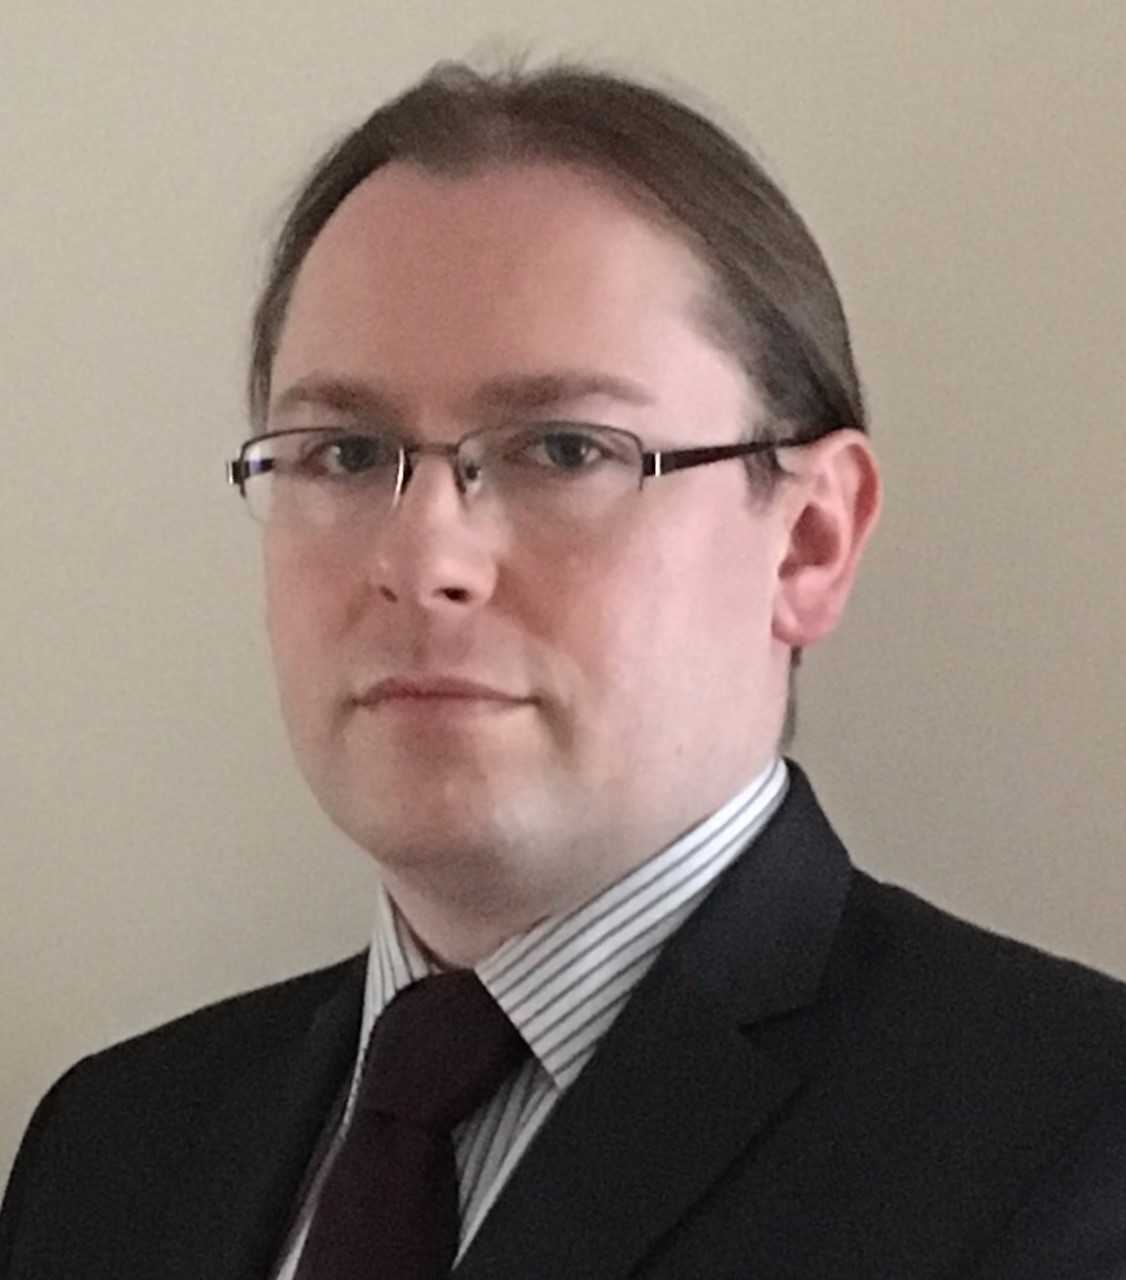 Maciej Polak, new intrusion Product Marketing Manager, EMEA, Tyco Security Products